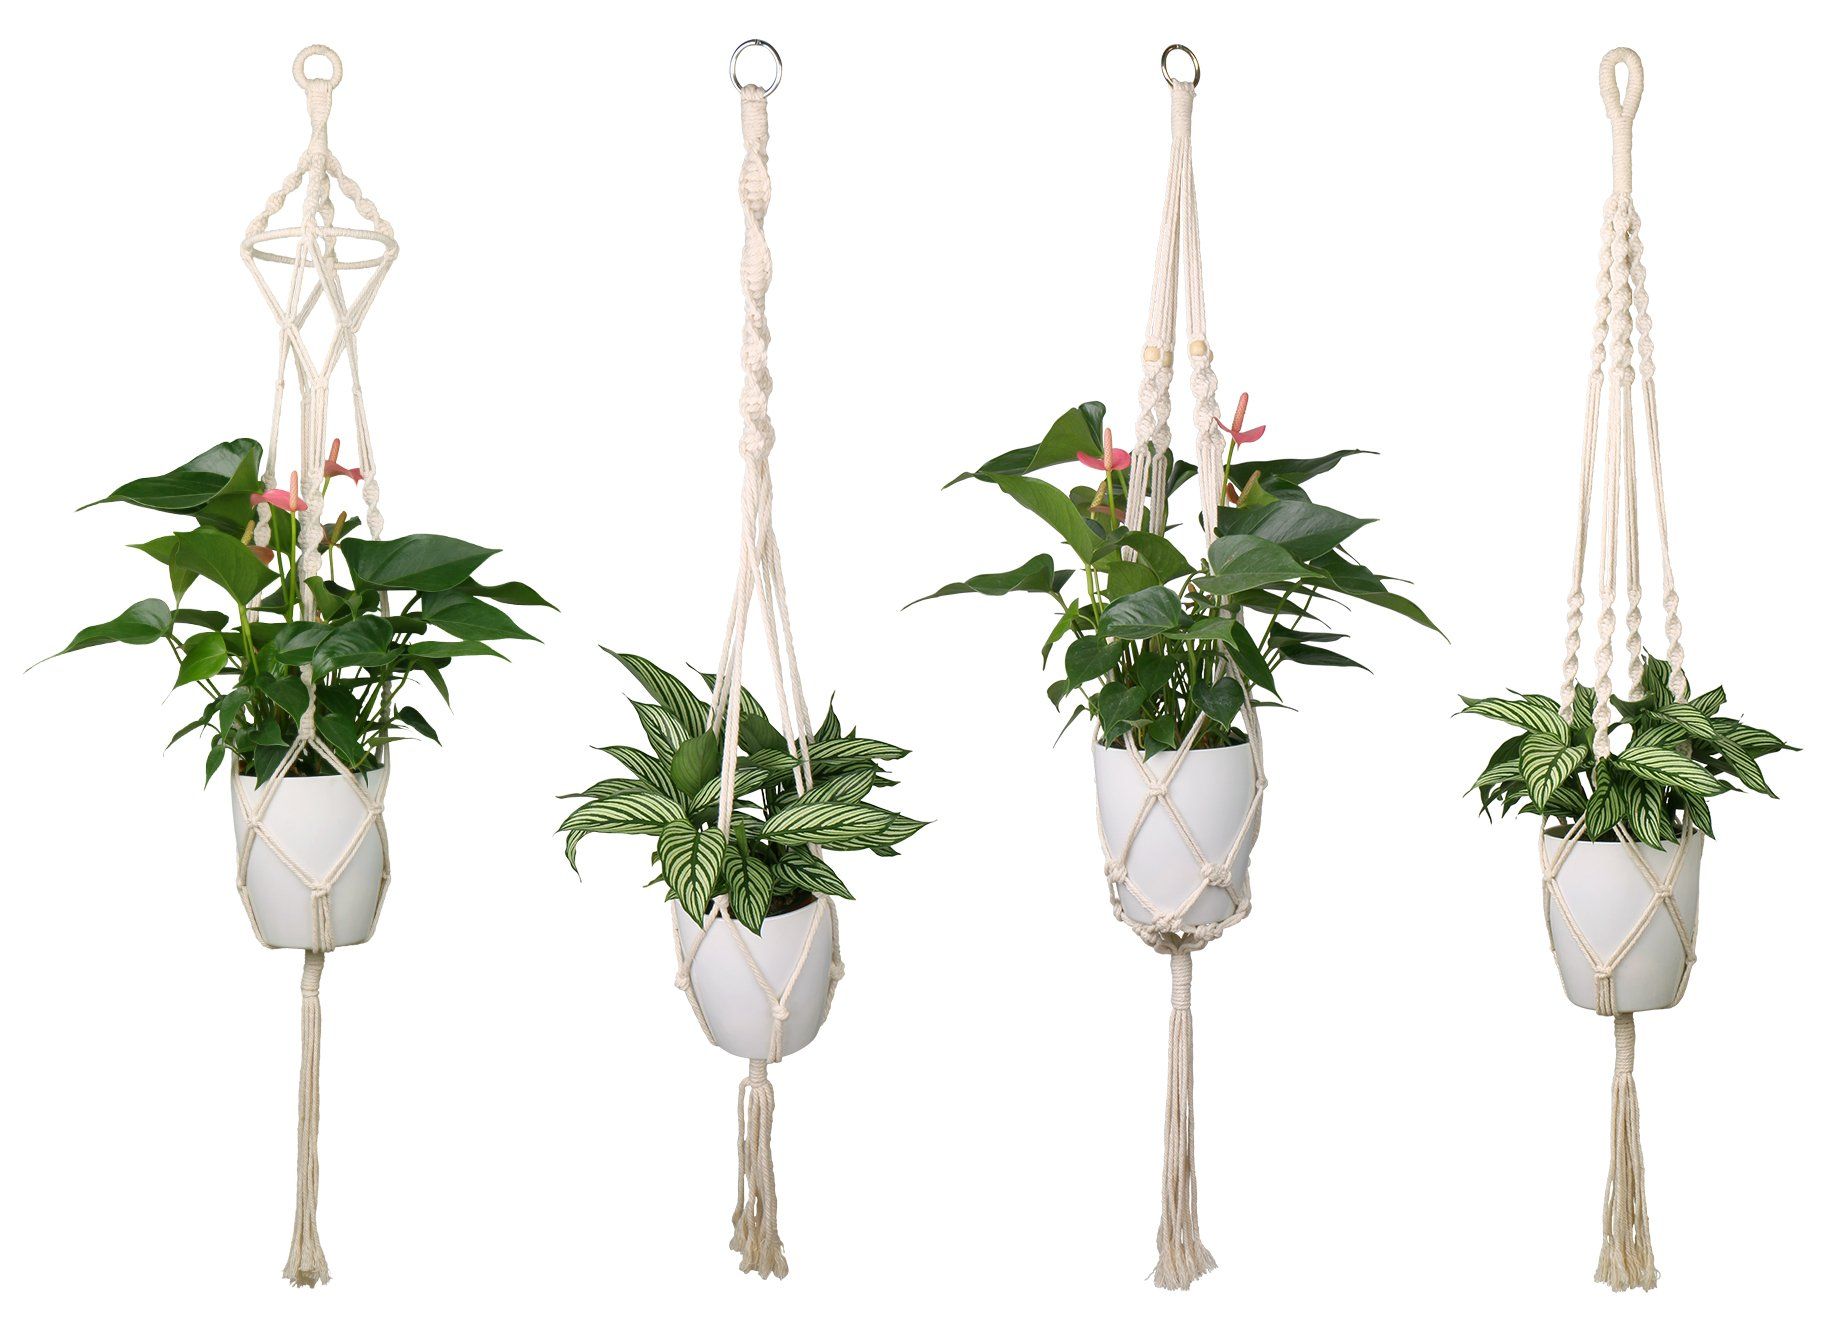 Luxbon 4Pcs Macrame Plant Hanger Handmade Woven Cotton Plant Holder Wall Hanging Planter Basket for Indoor Outdoor Garden Patio Balcony Ceiling Decorations, 4 Legs 40 Inch